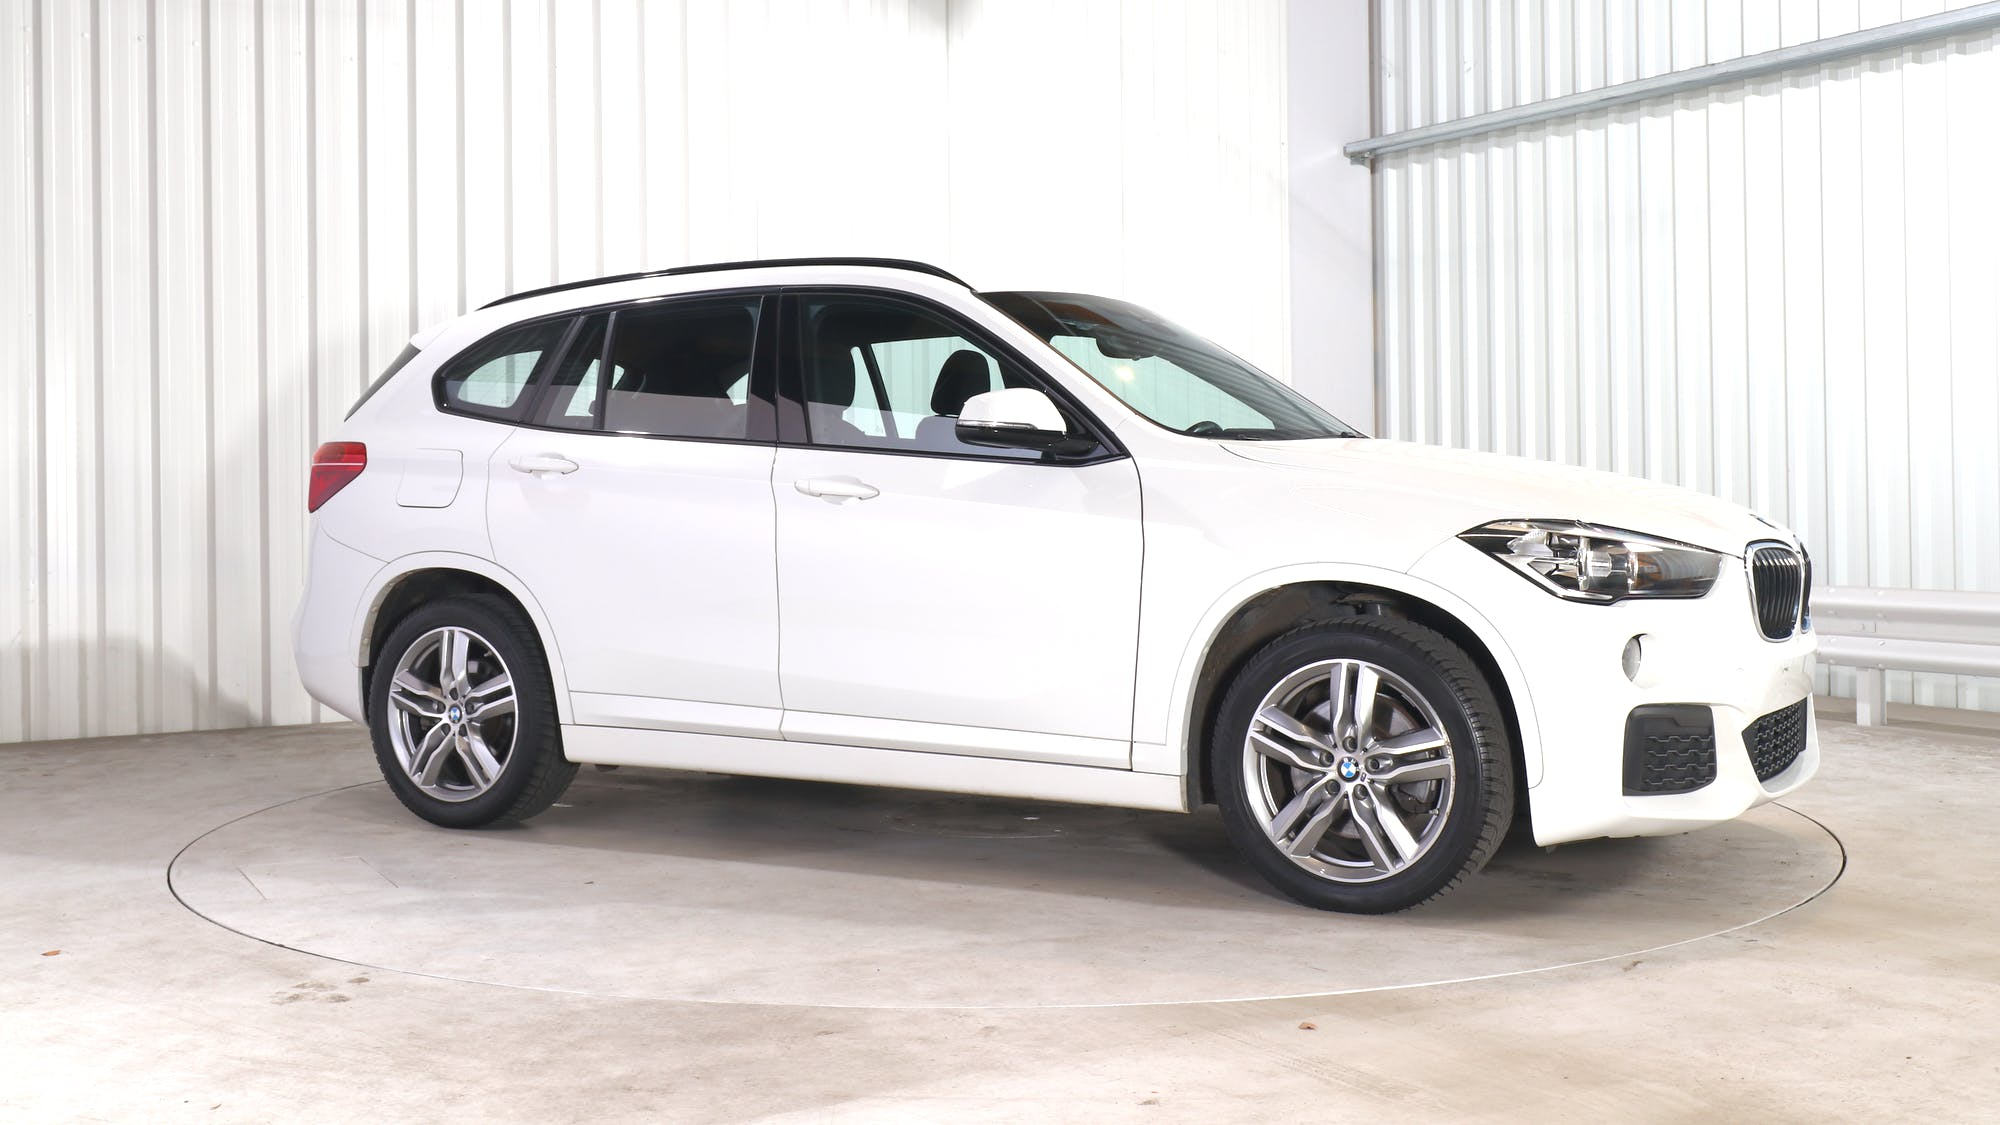 BMW X1 leasing exterior 9